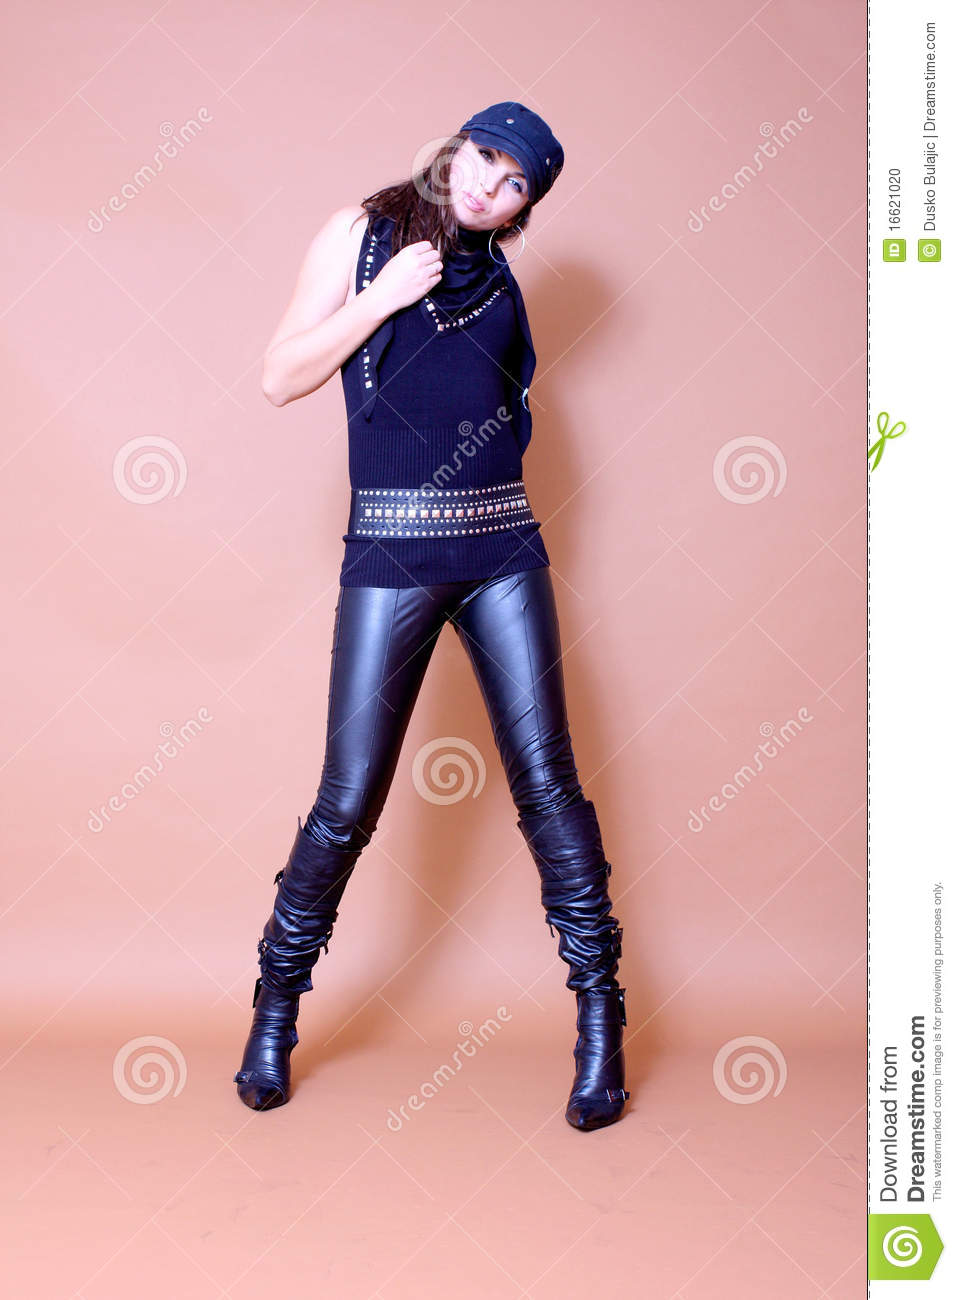 Congratulate, women wearing leather pants topless pic of